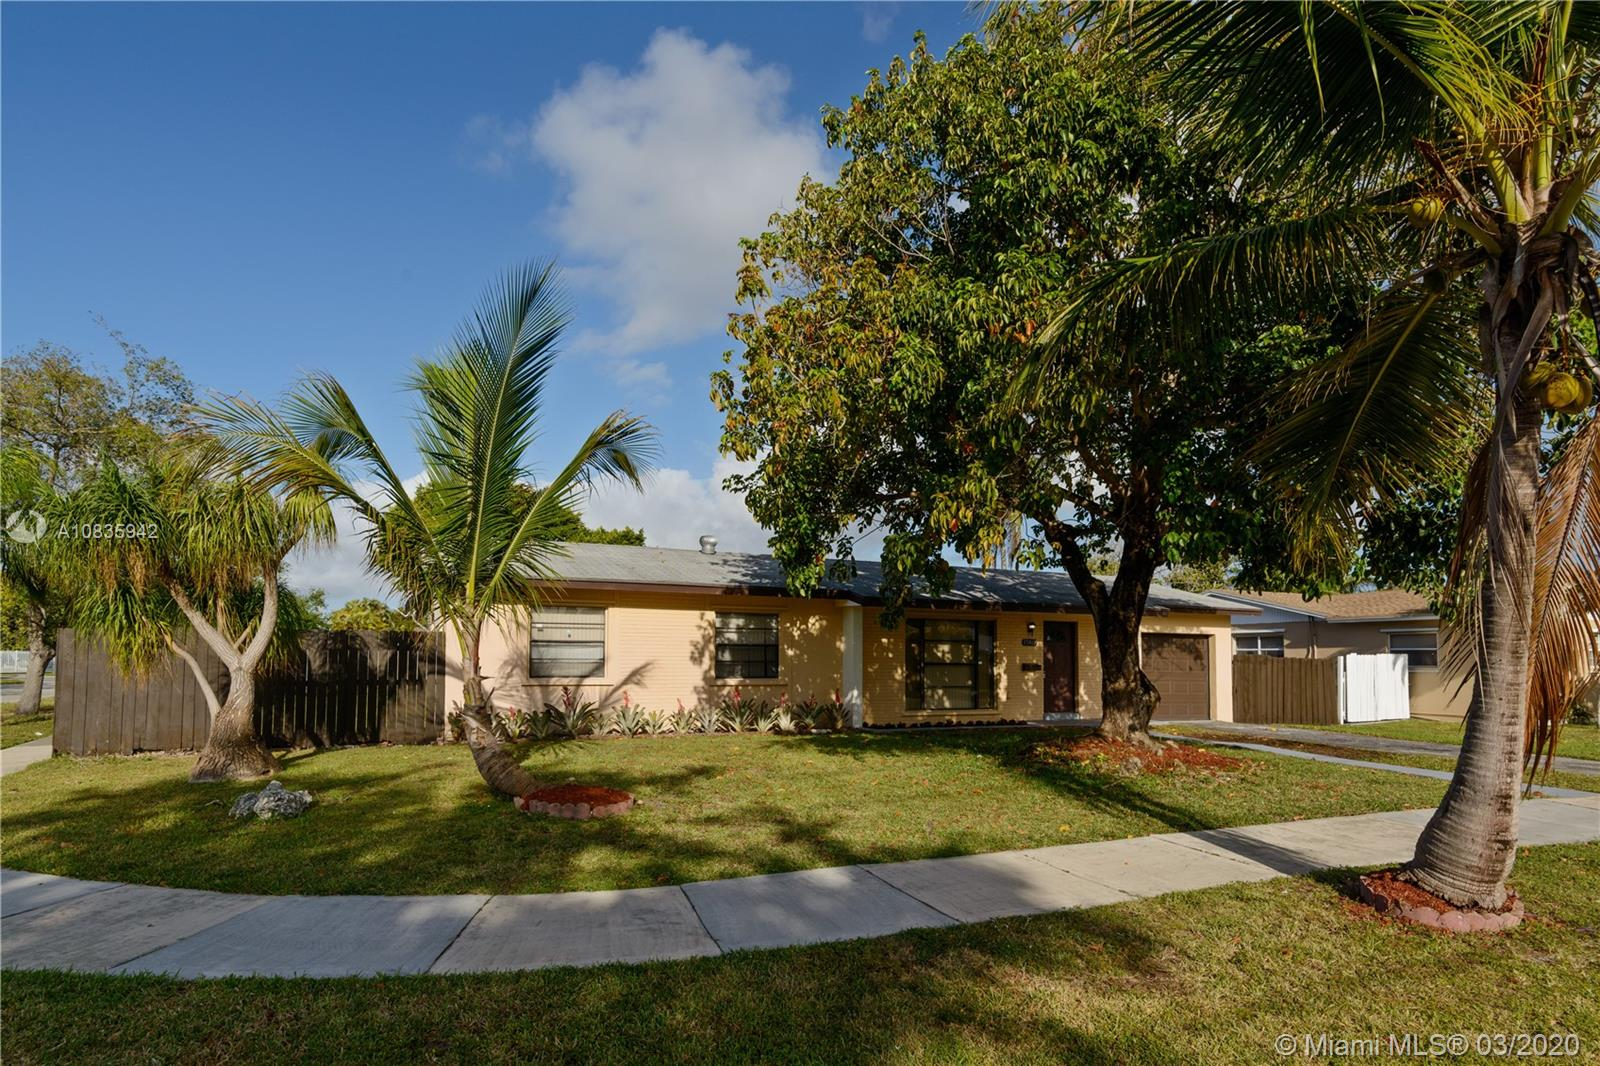 15962 SW 104th Ave, Miami, Florida 33157, 3 Bedrooms Bedrooms, ,2 BathroomsBathrooms,Residential,For Sale,15962 SW 104th Ave,A10835942